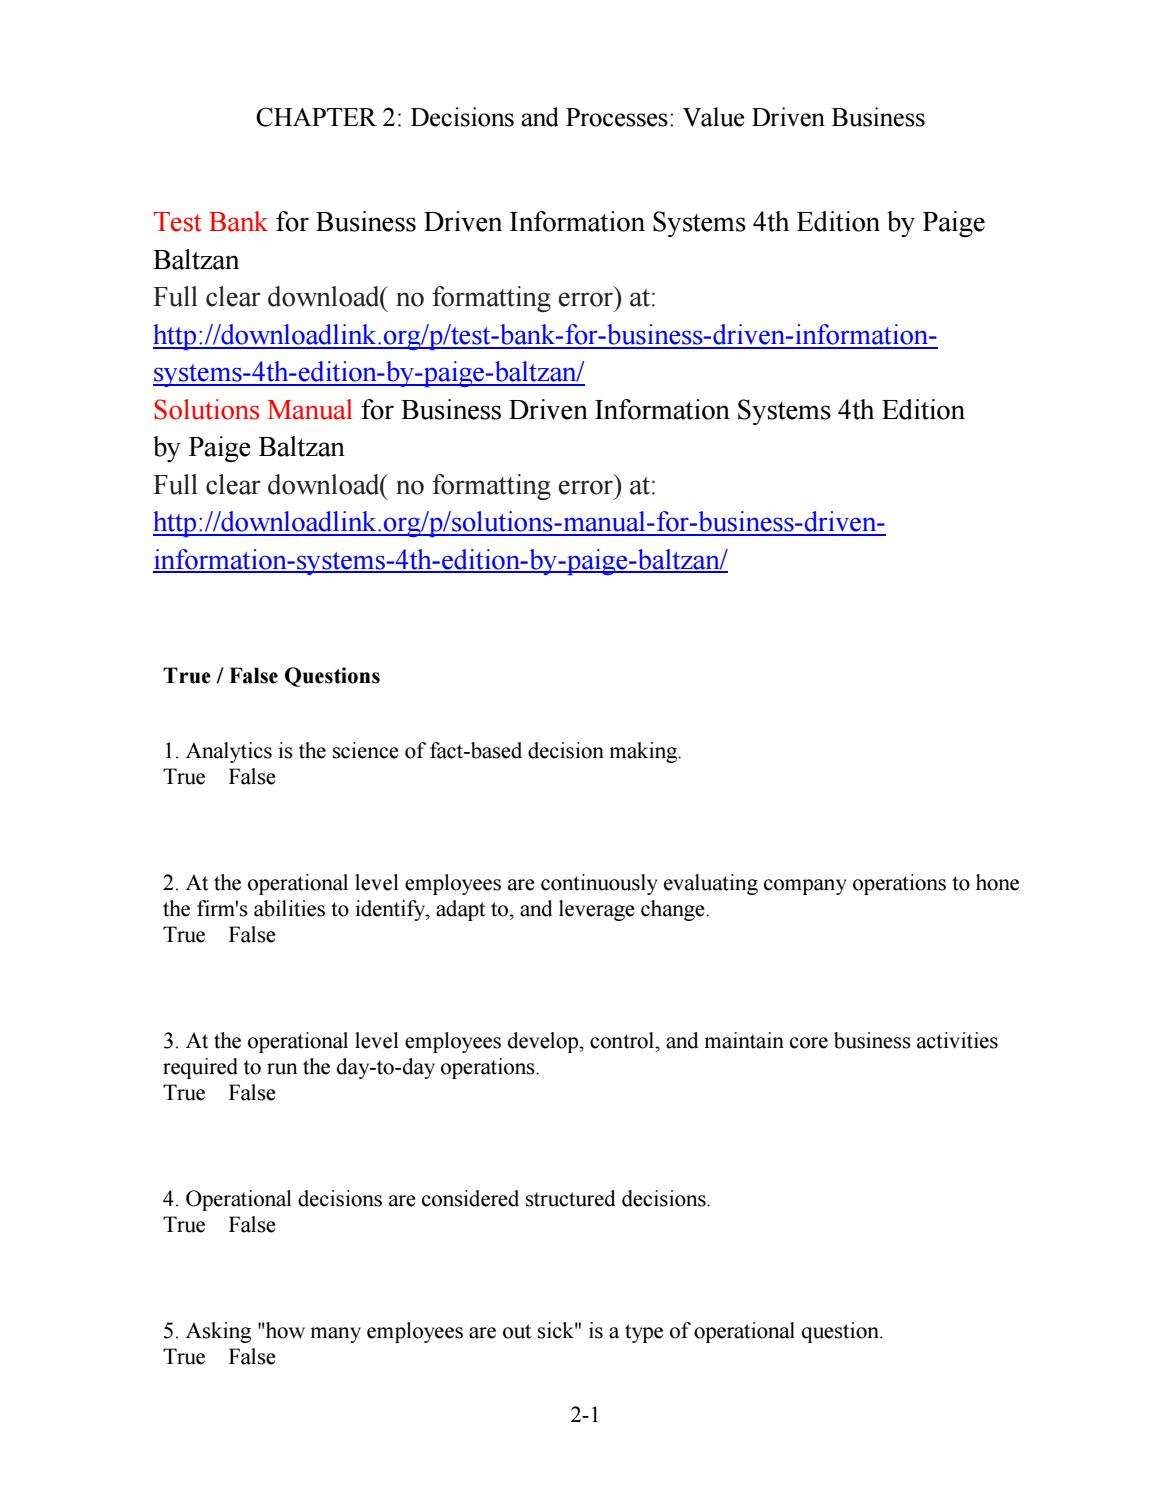 Test Bank for Business Driven Information Systems 4th Edition by Paige  Baltzan by Twomey568 - issuu